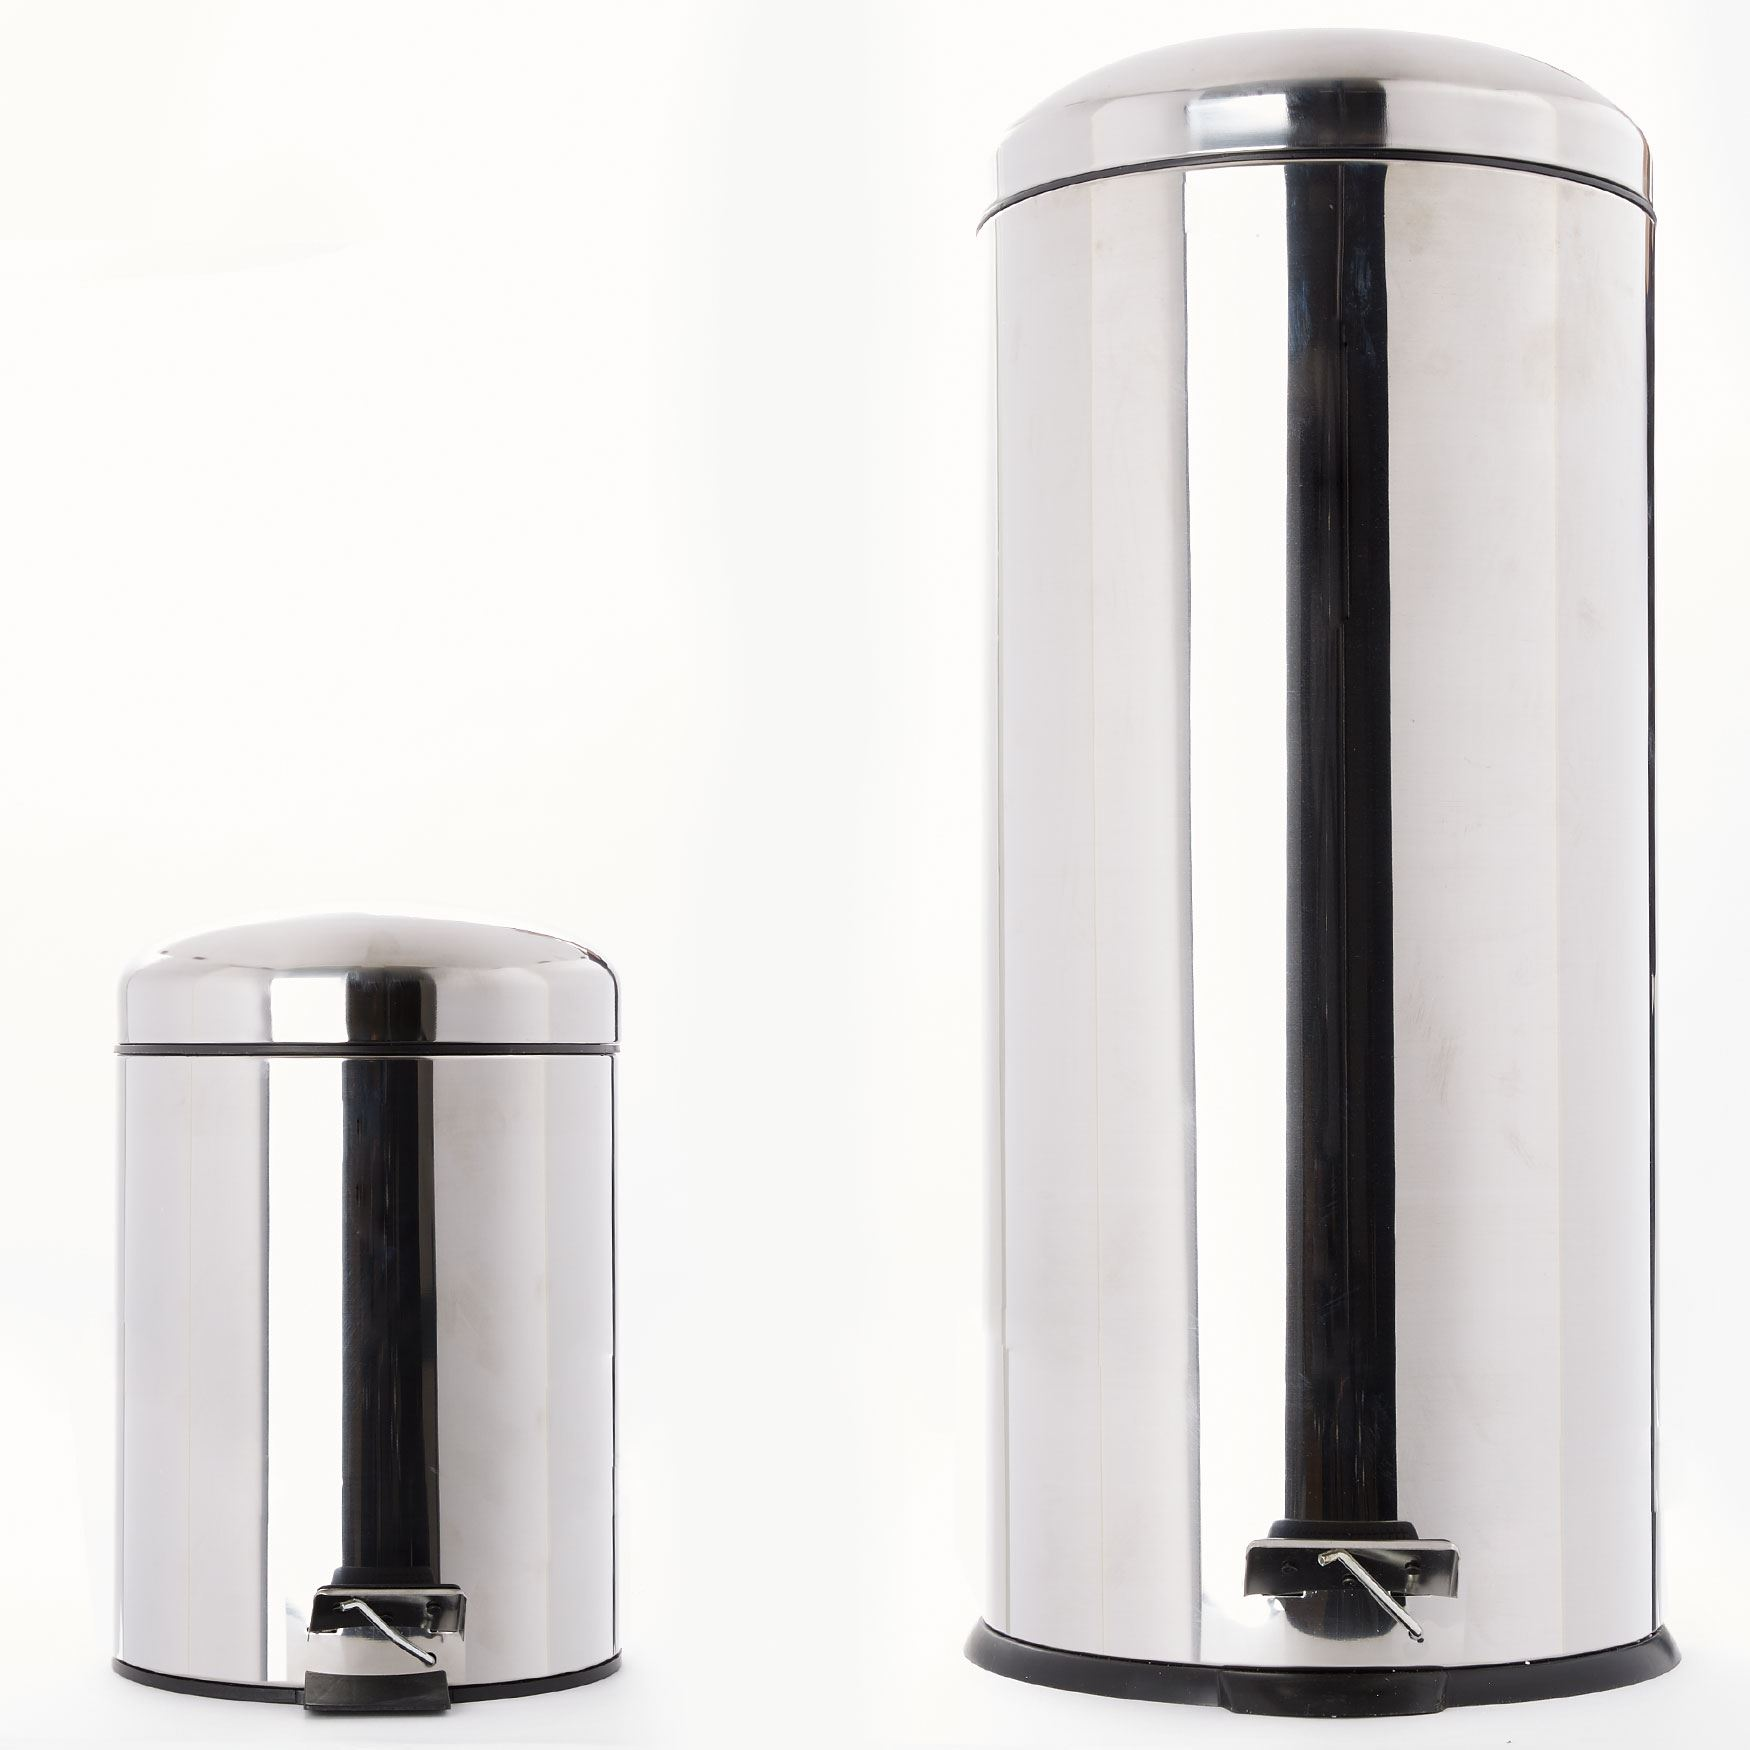 Set of 2 Step Trash Cans , SHINY STAINLESS STEEL